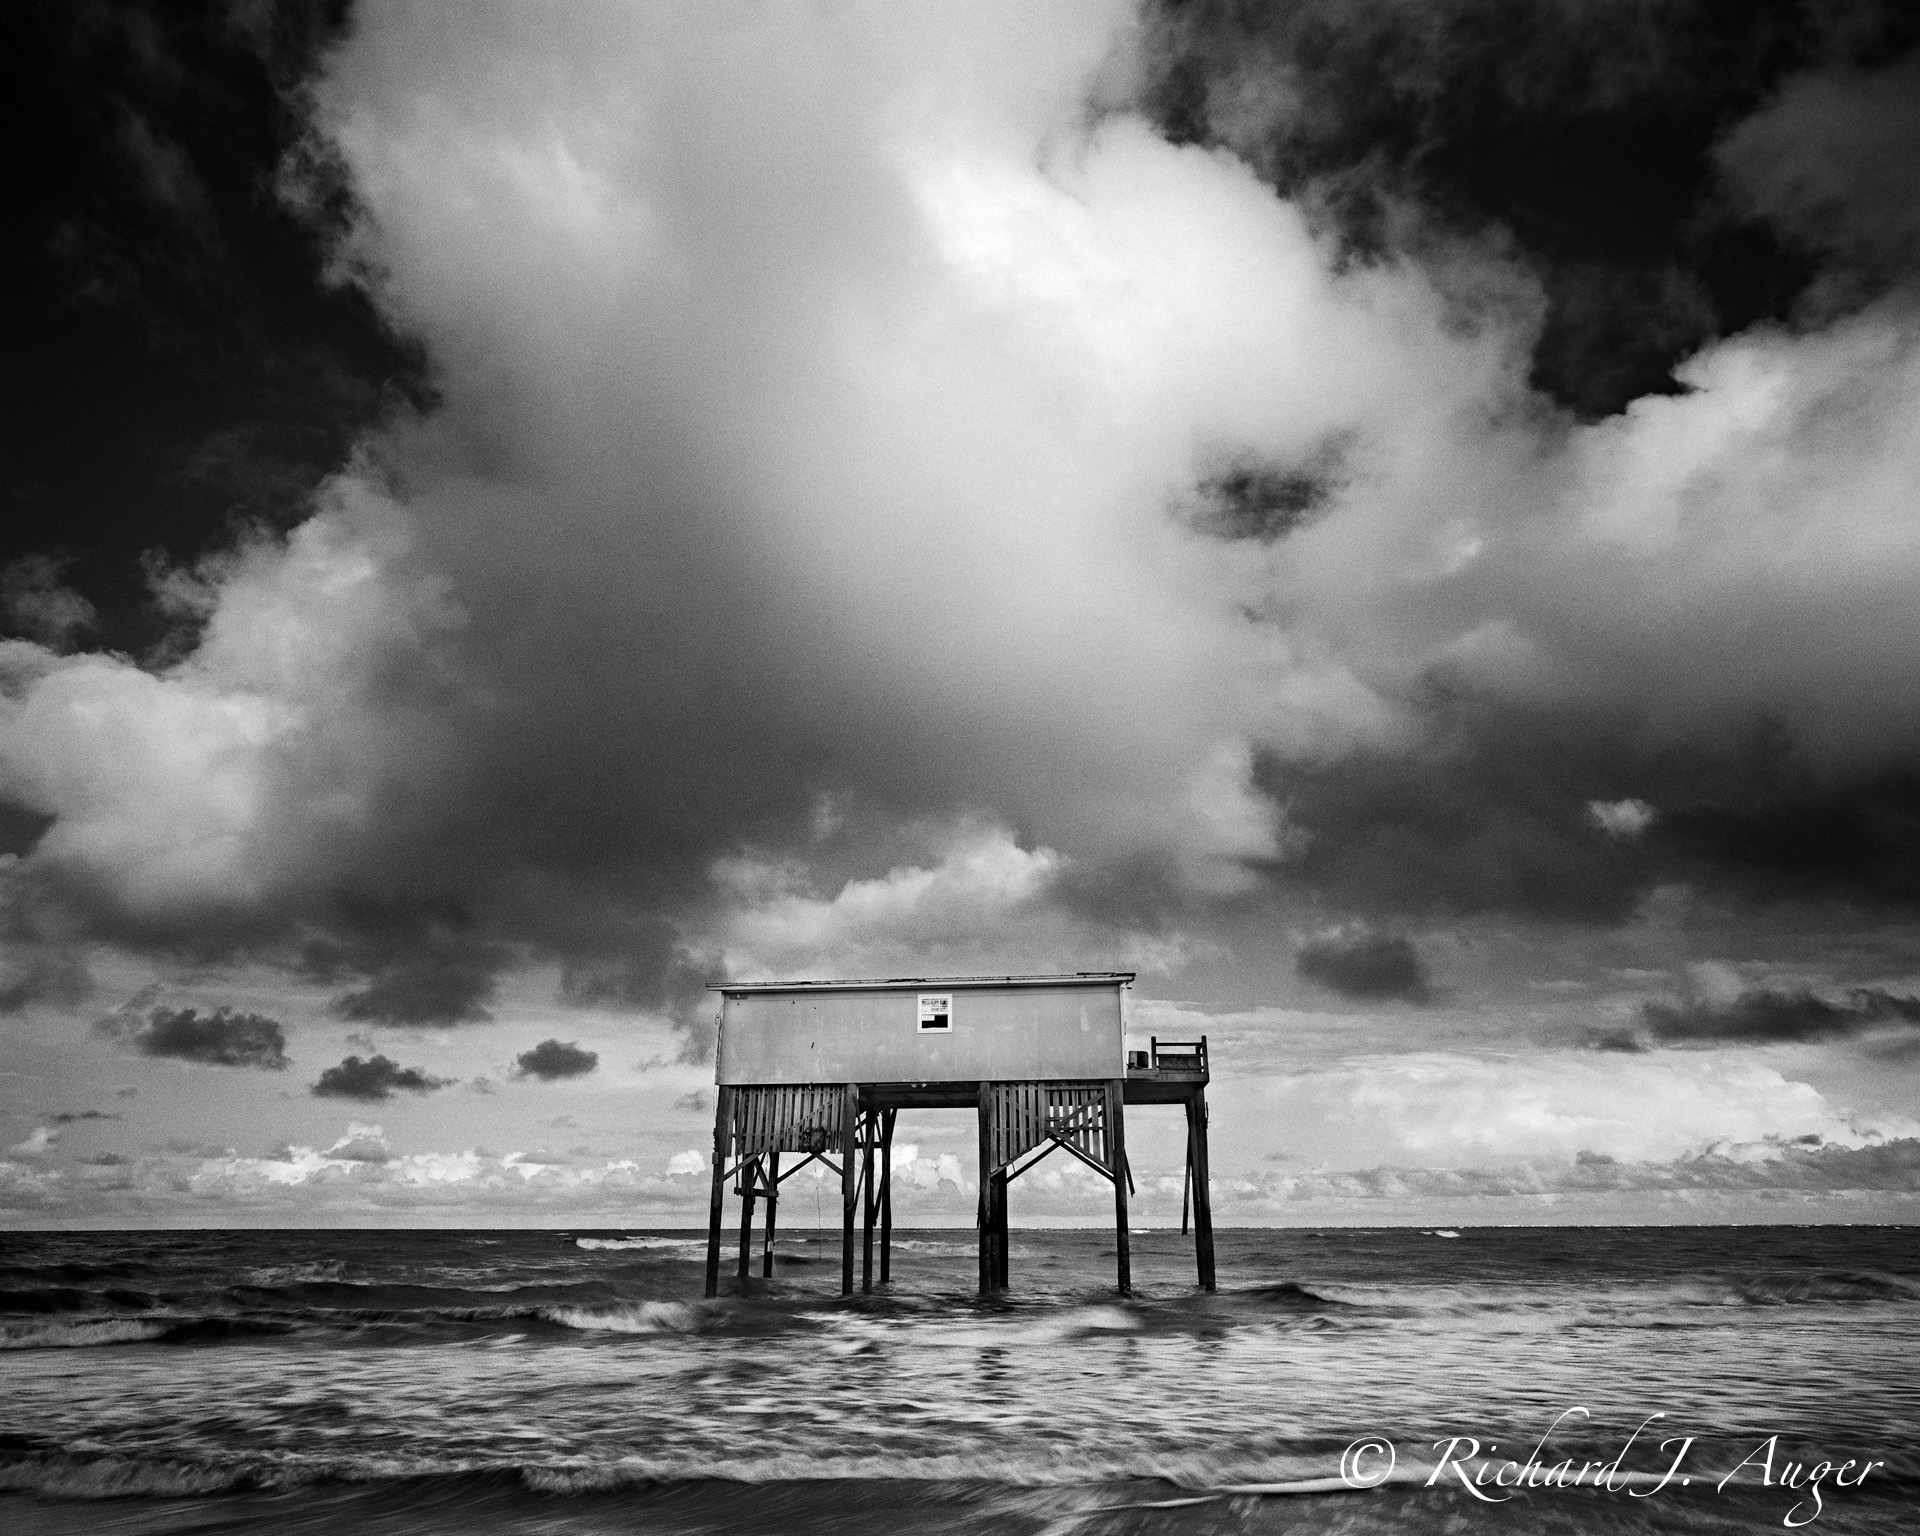 Hunting Island, South Carolina, Fishing Shack, Stilt House, Black and White, storm, ocean, waves